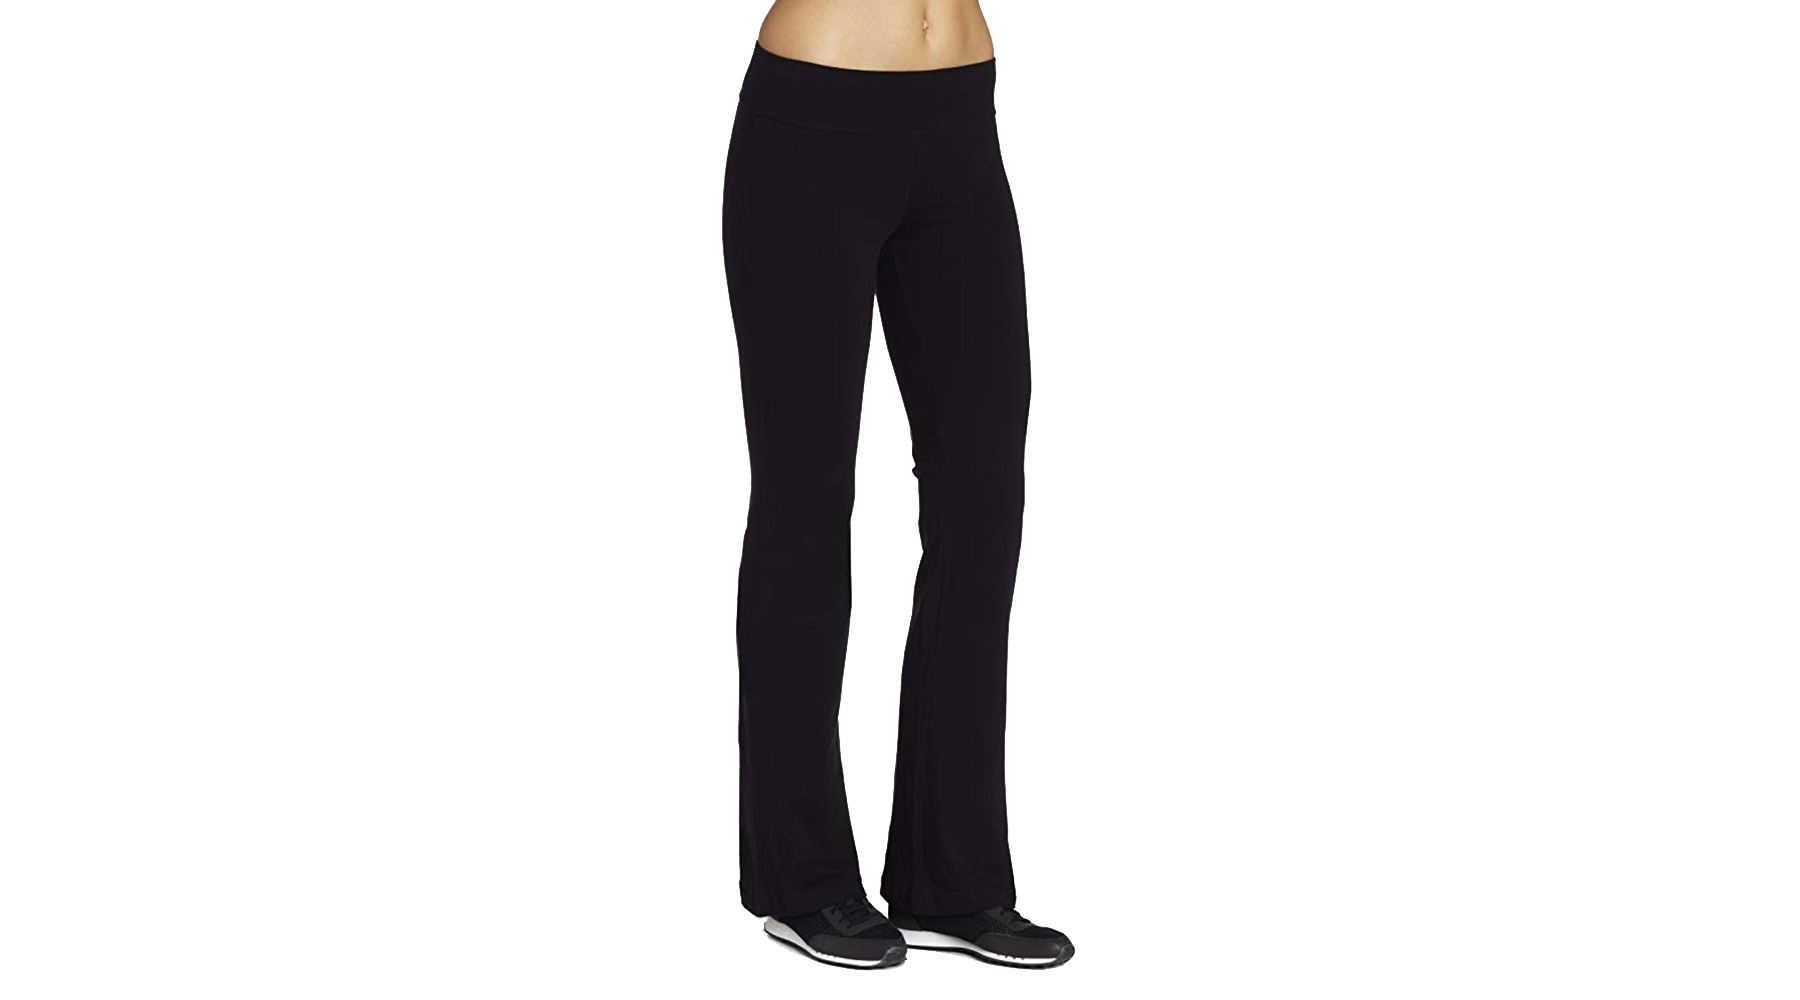 729527f4eb36 7 Best Yoga Pants on Amazon